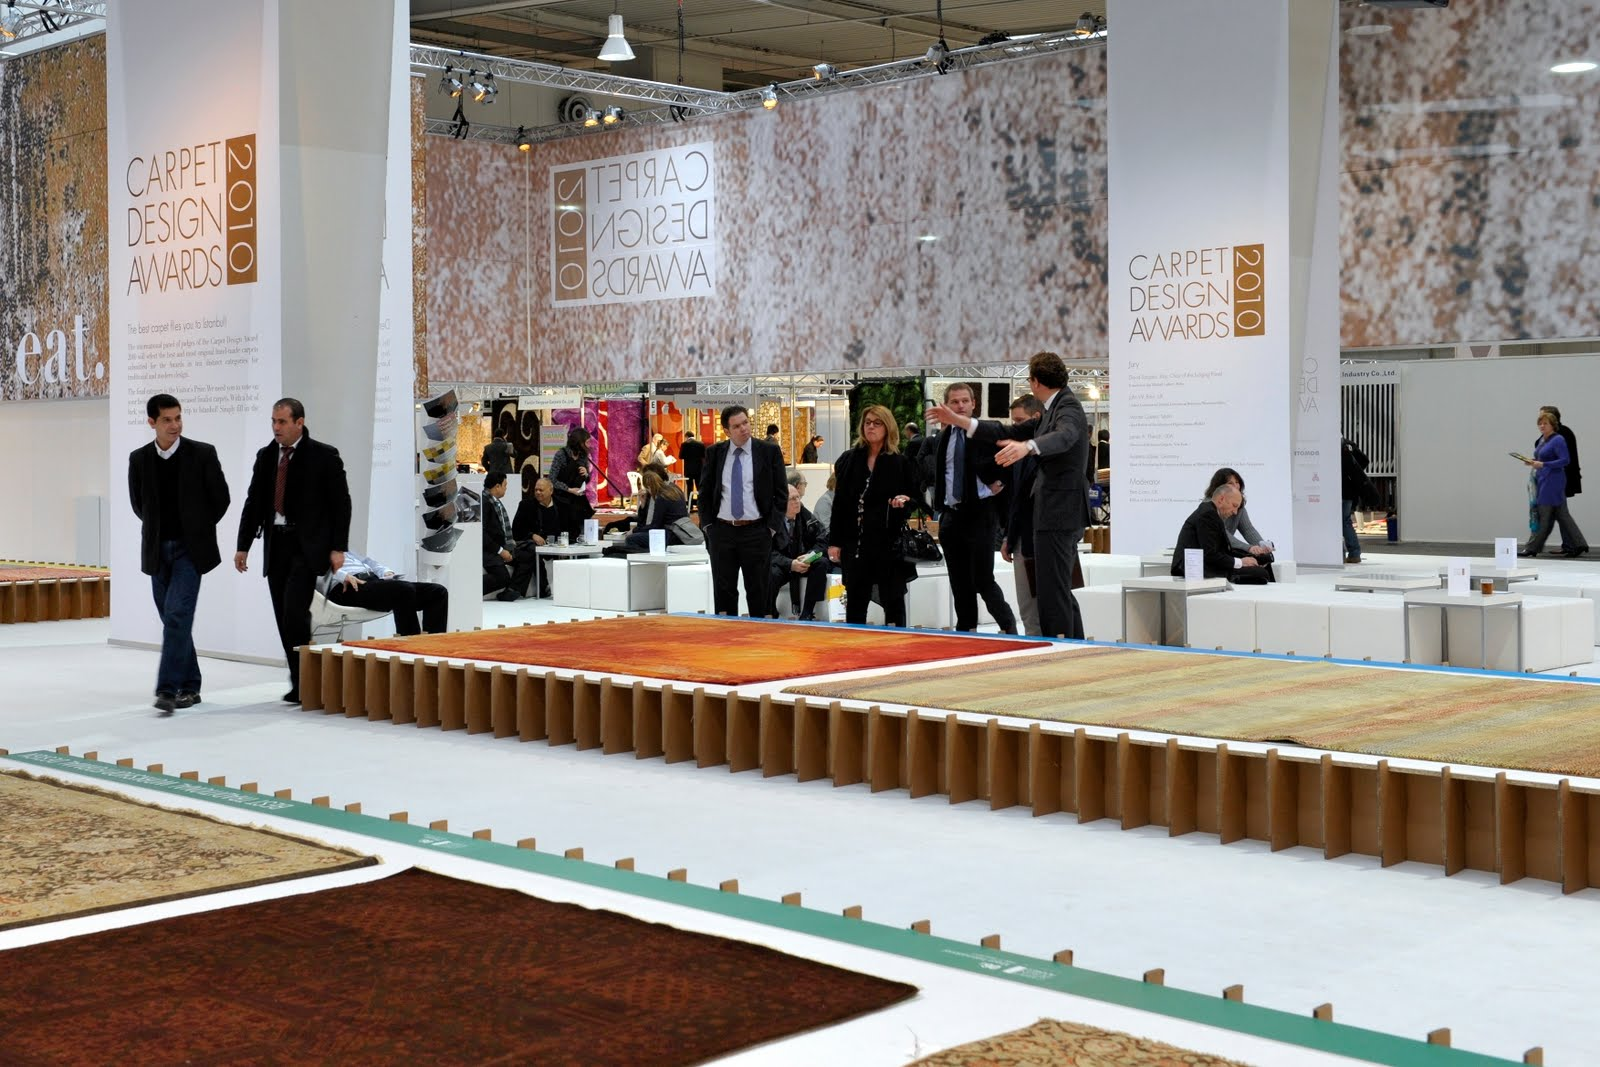 Domotex_Carpet_Design_Award